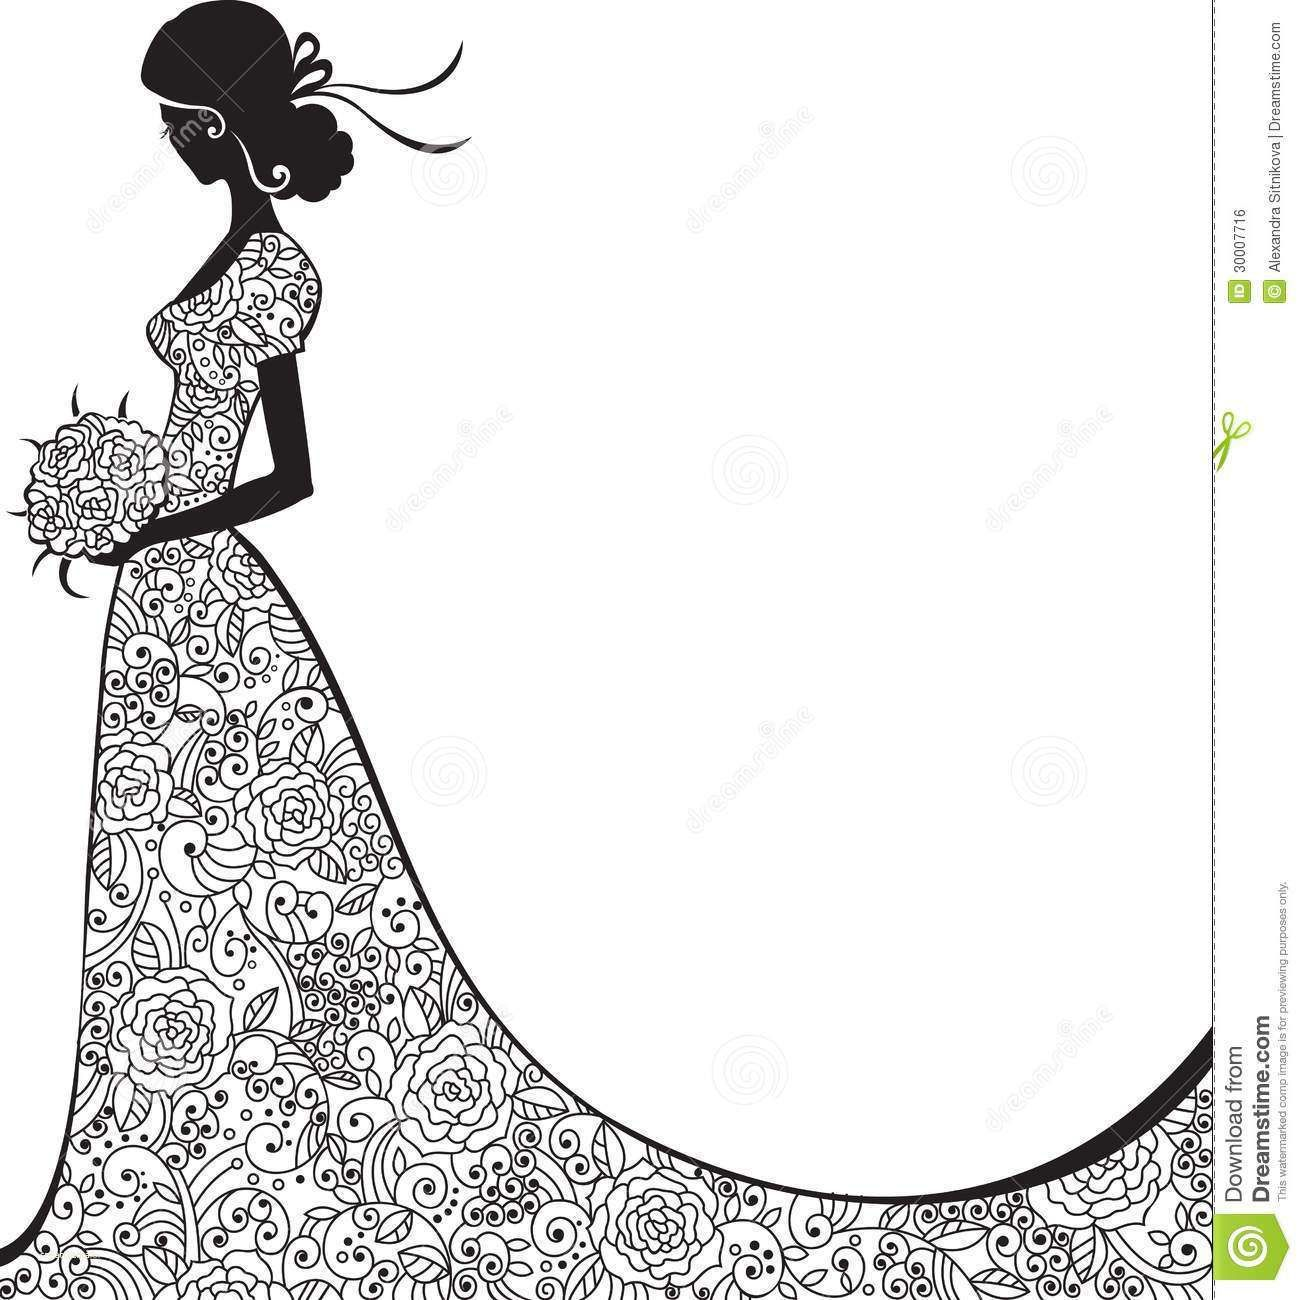 Awesome modern wedding ideas. Bride clipart black and white